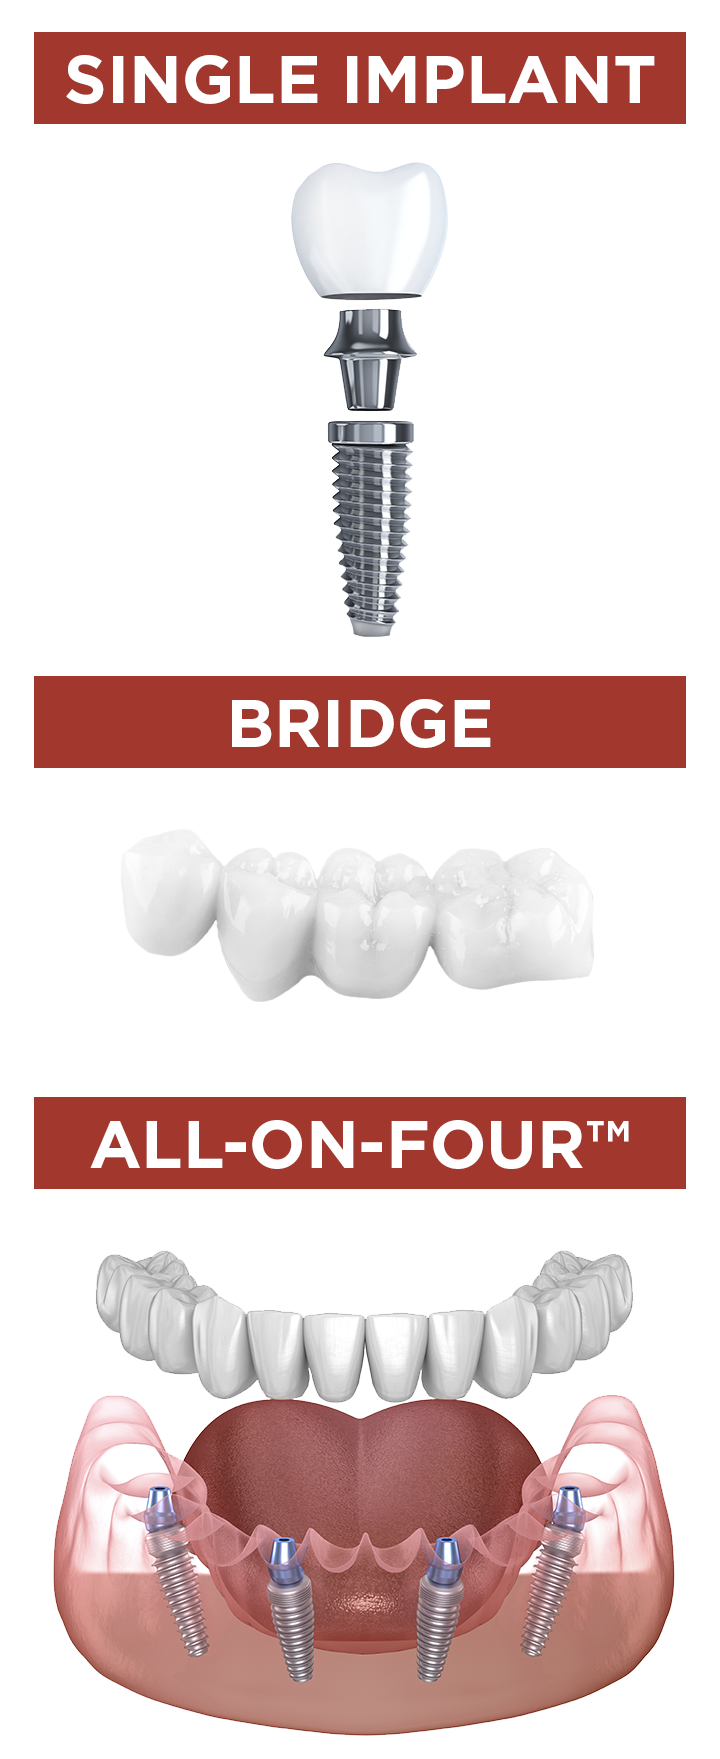 Types of Implants All on Four Crown Abutment Post Screw Texas Sedation Dental and Implant Center Shreveport Dallas Longview Tyler